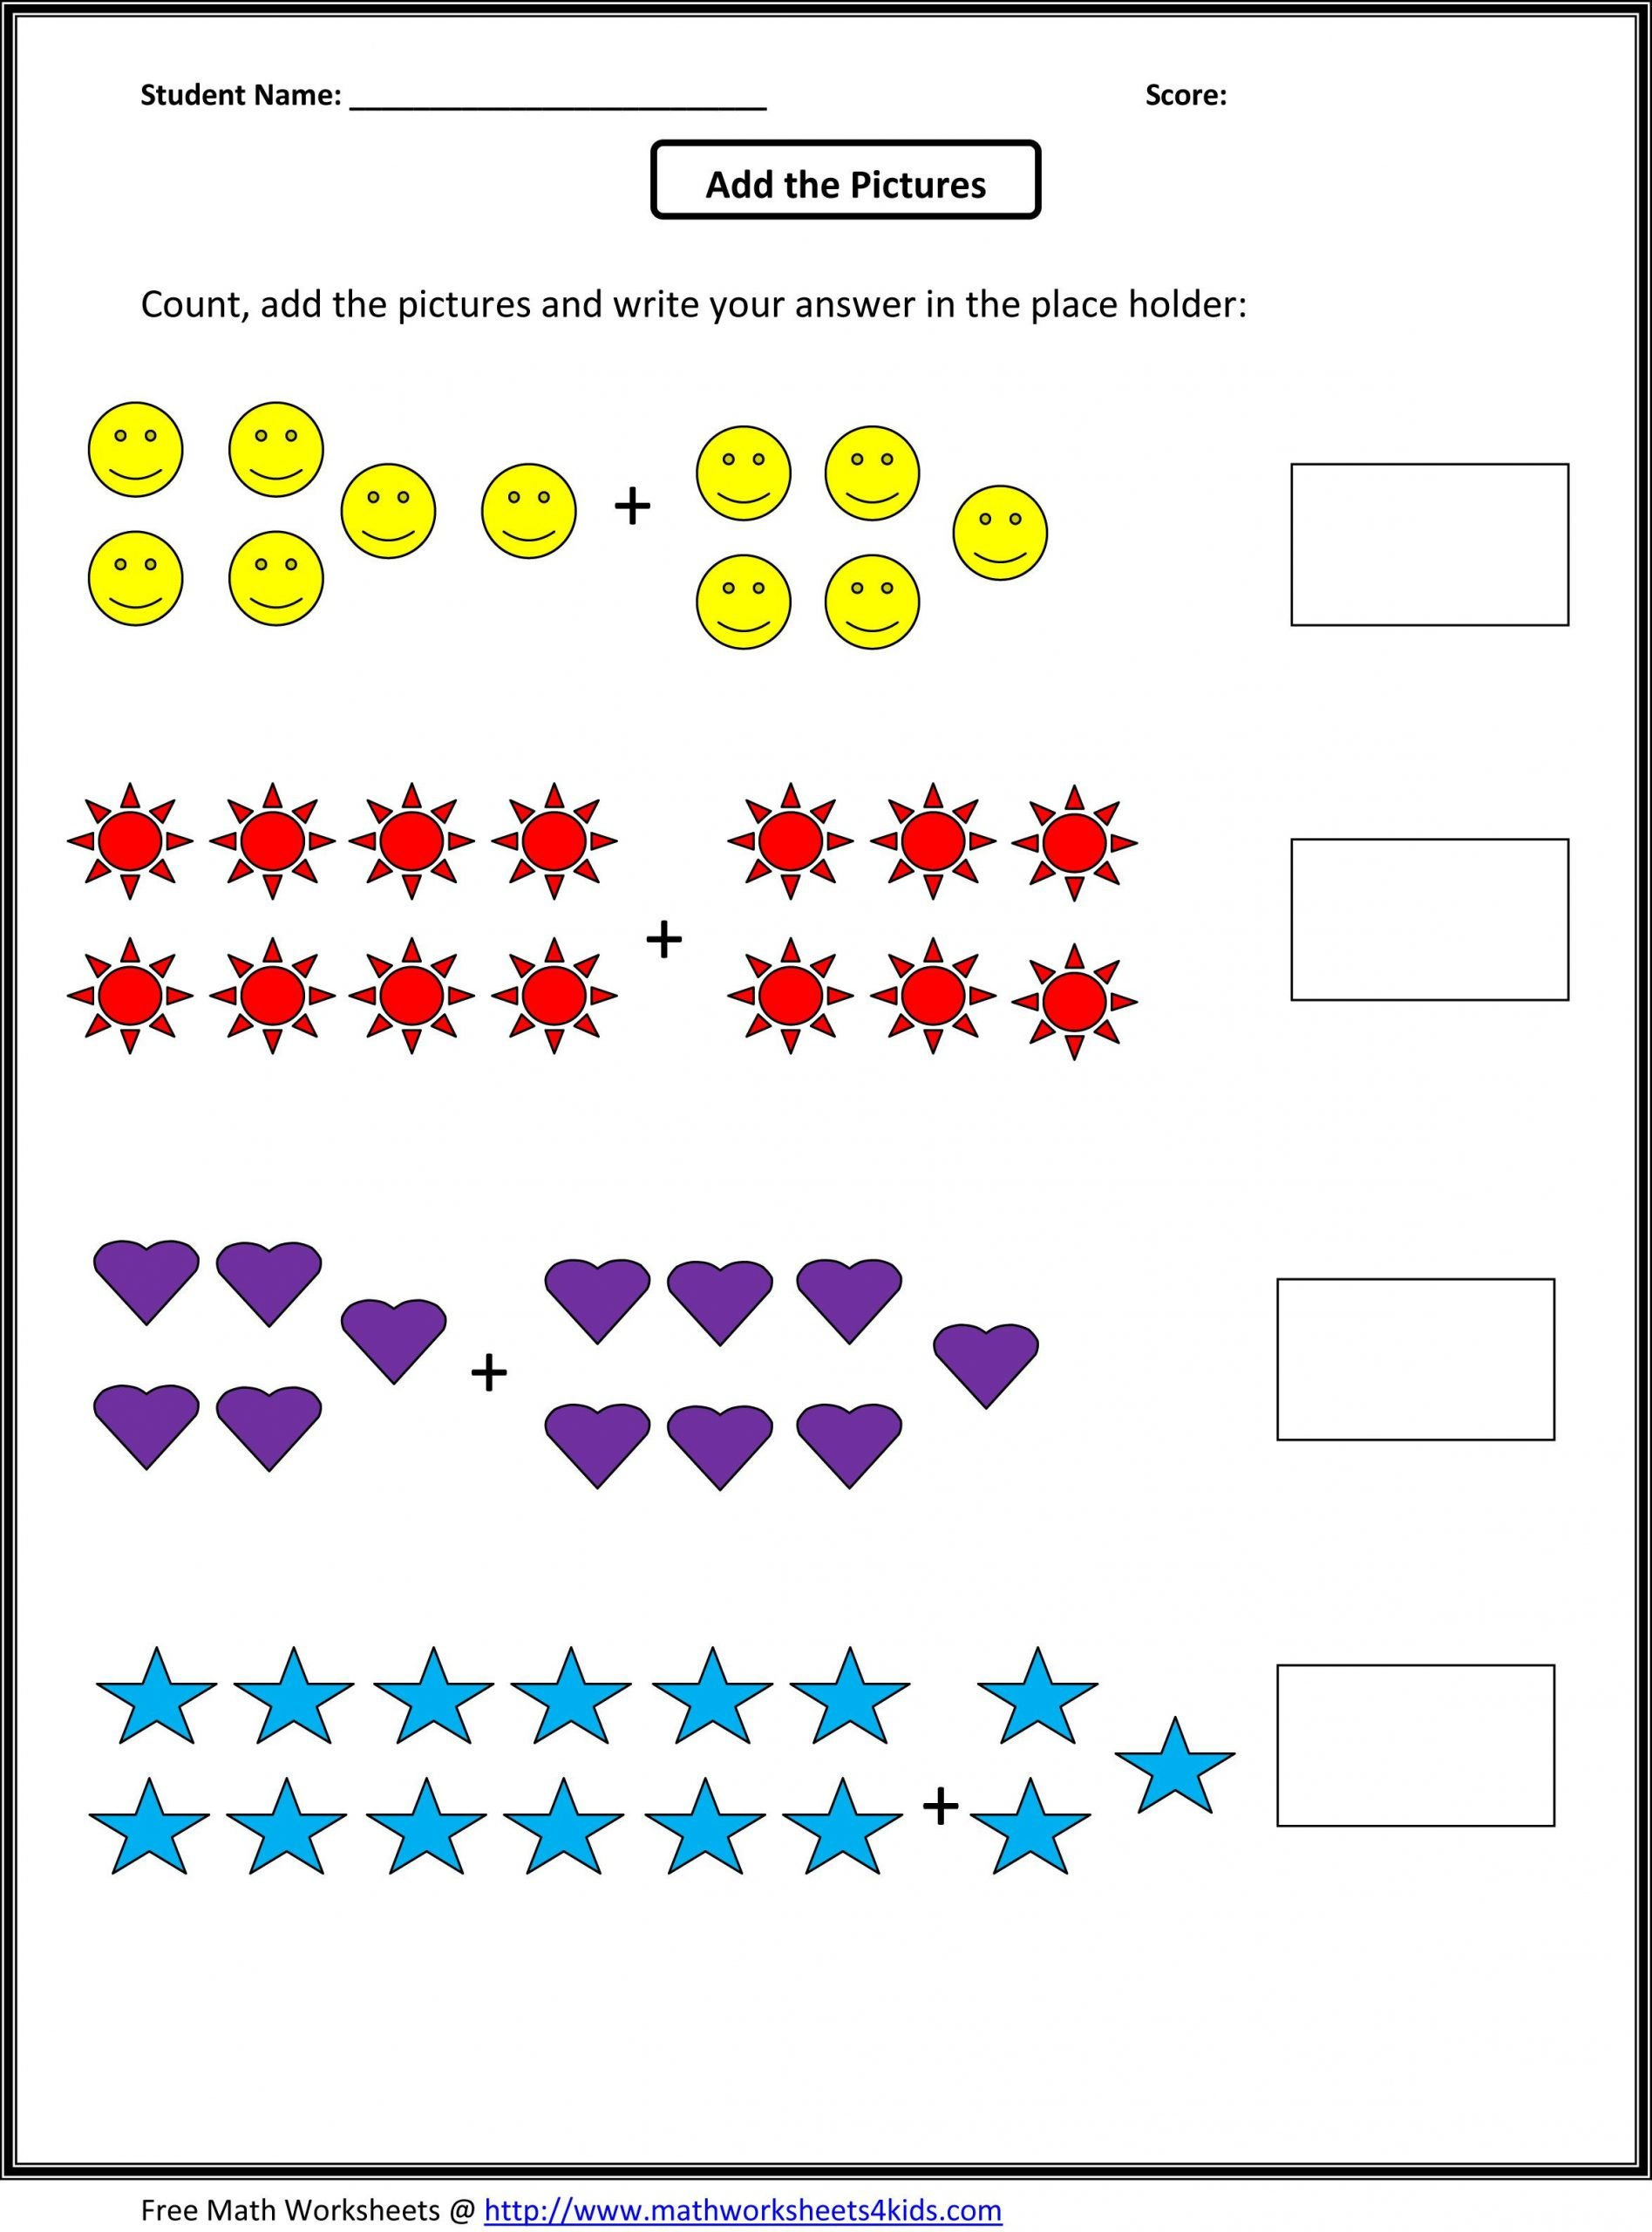 Addition Worksheets with Pictures Addition Worksheets for Grade 1 with